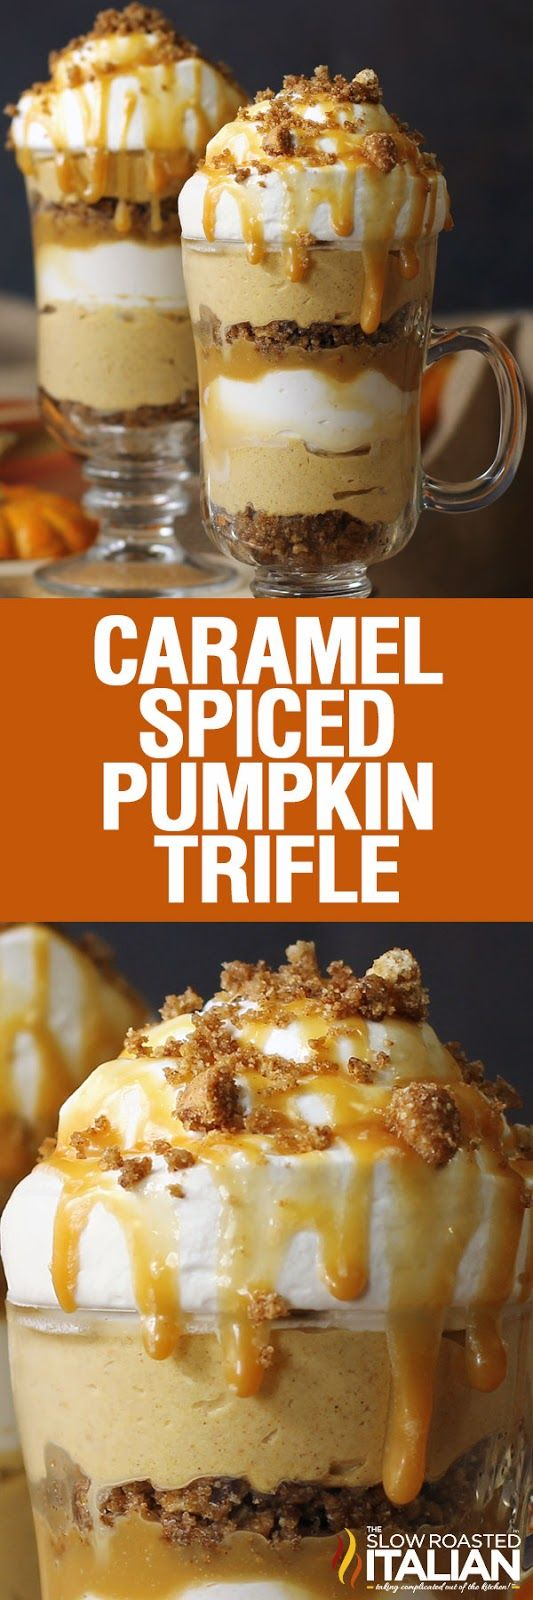 This Caramel Spiced Pumpkin Parfait brings your favorite fall flavors together in this incredible 4 layer trifle! Truly a taste of autumn in a glass. A simple recipe that is perfect for individual servings or a big trifle dish for the holidays. This would be perfect for Thanksgiving!